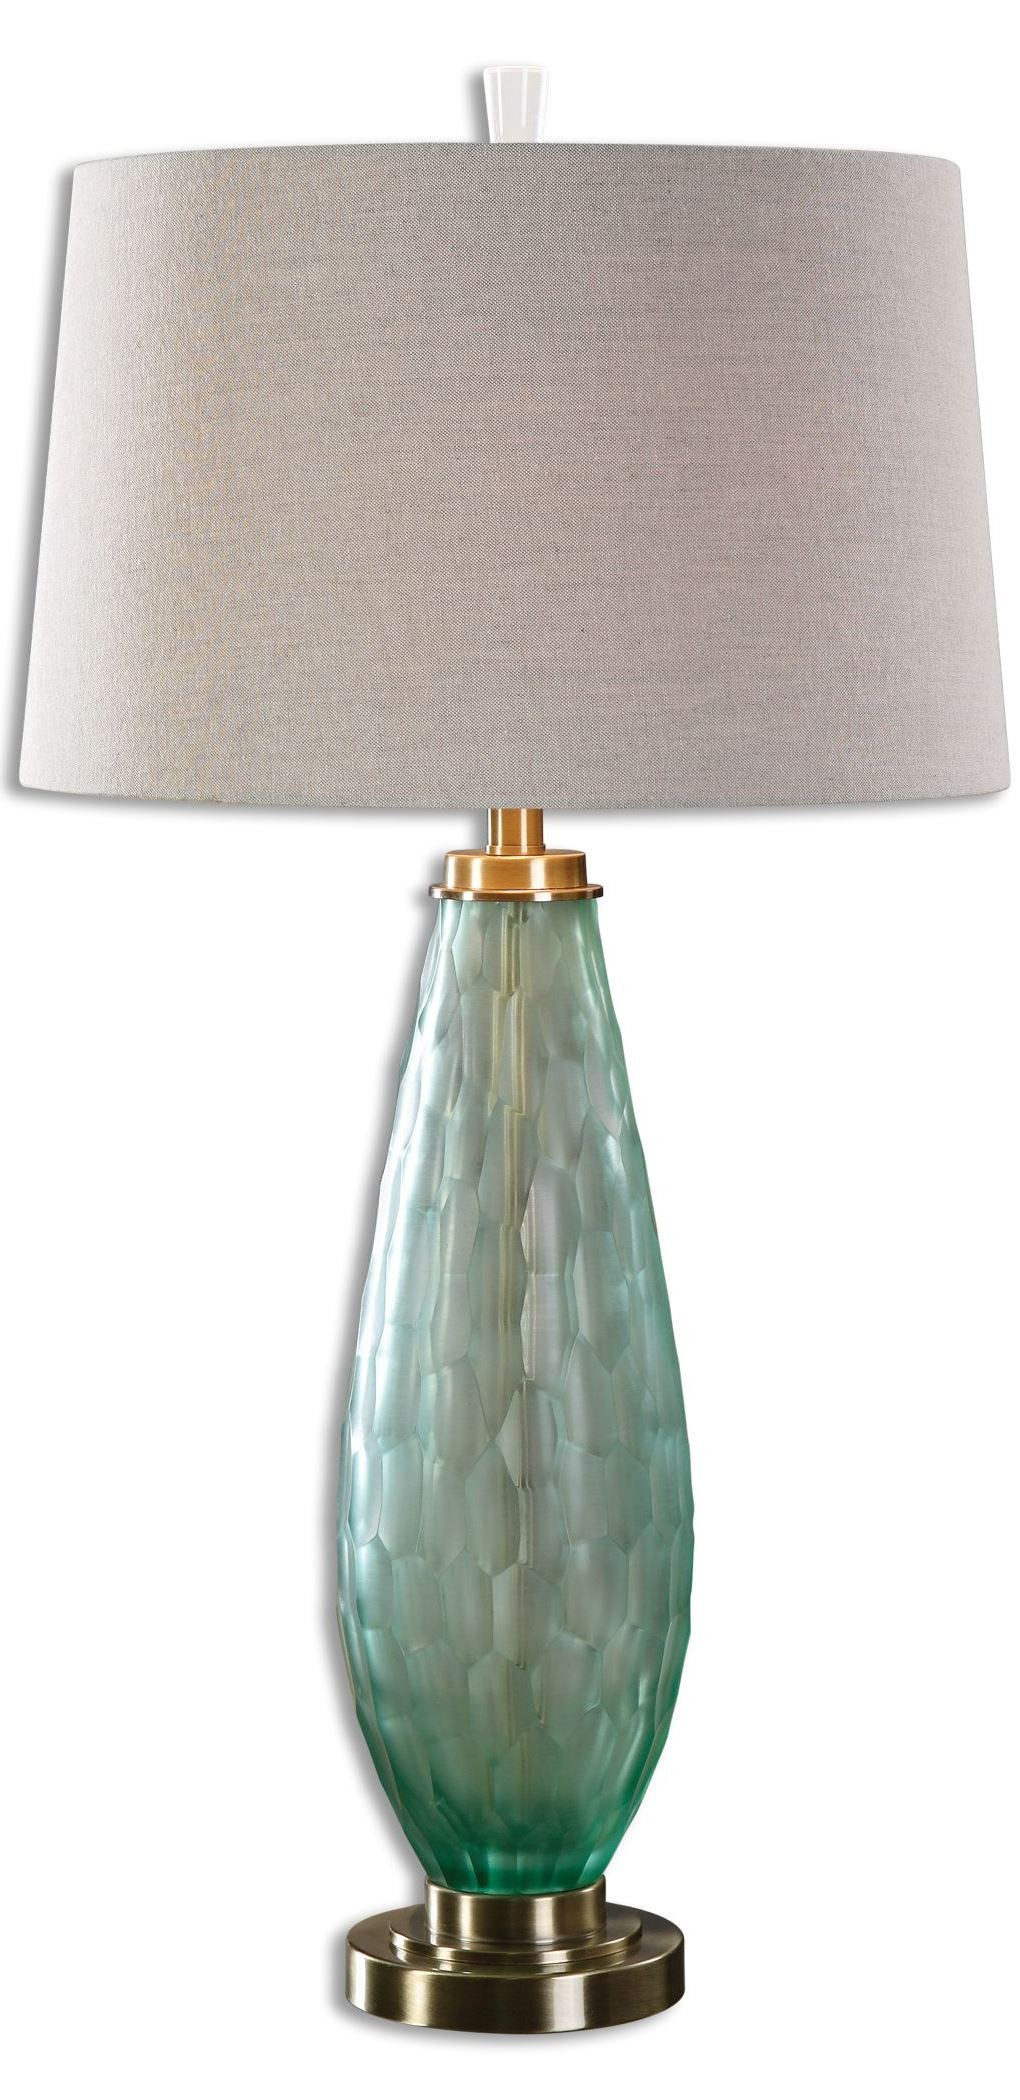 sea glass table lamps lenado sea green glass table lamp from uttermost 27003 5091